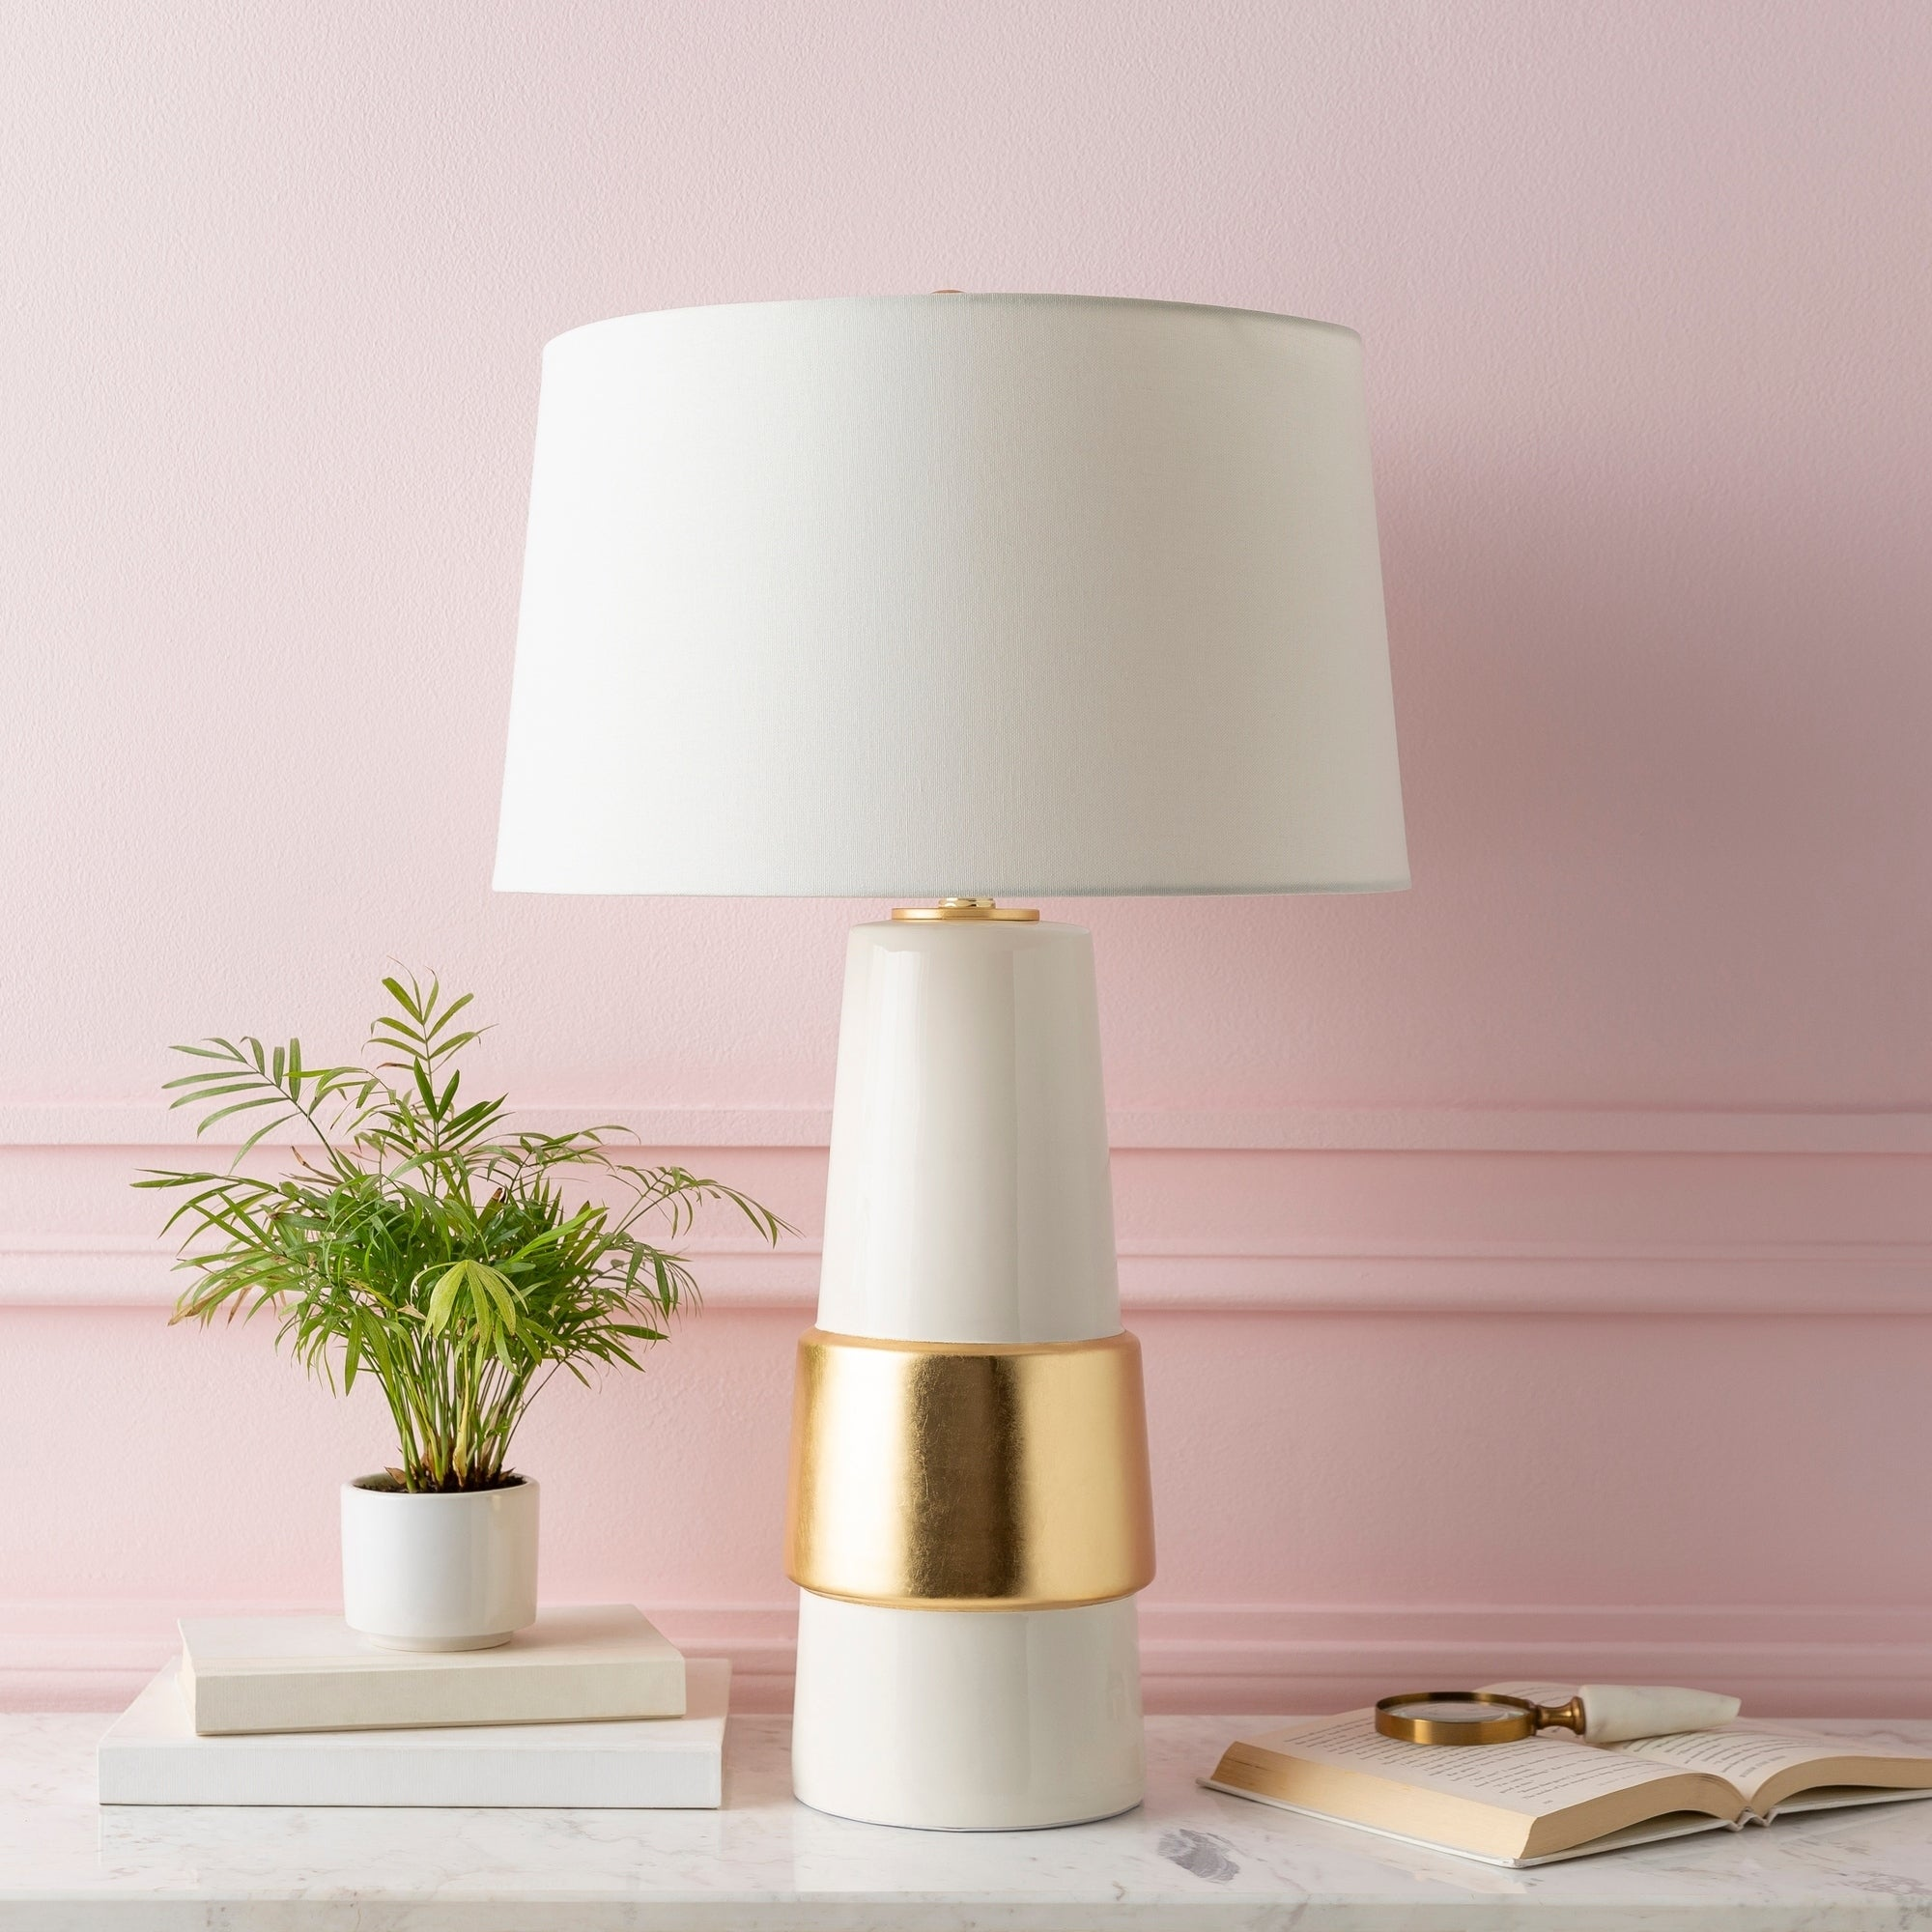 Akoni Golden Glam 28 75 Inch Table Lamp 17 X 17 X 28 75 On Sale Overstock 28490895